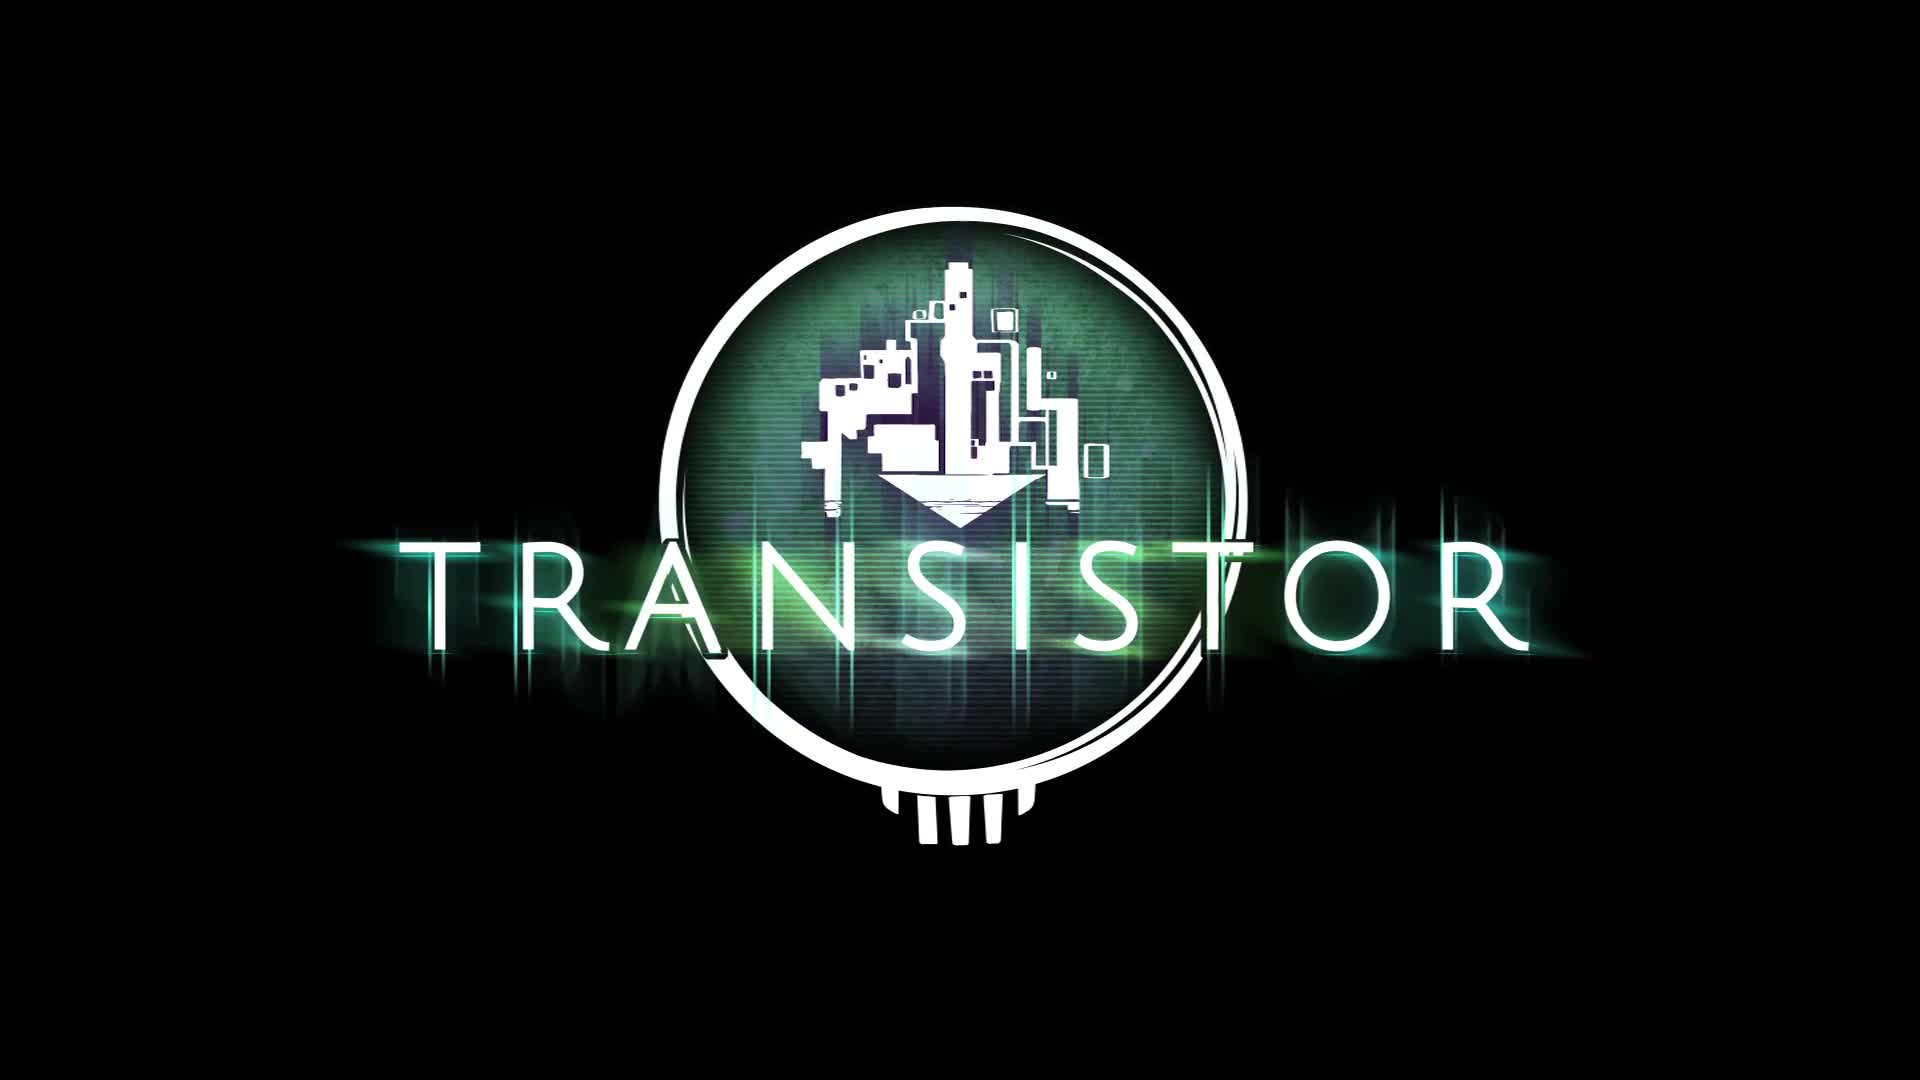 Supergiant Games Reveals Transistor, Playable at PAX East